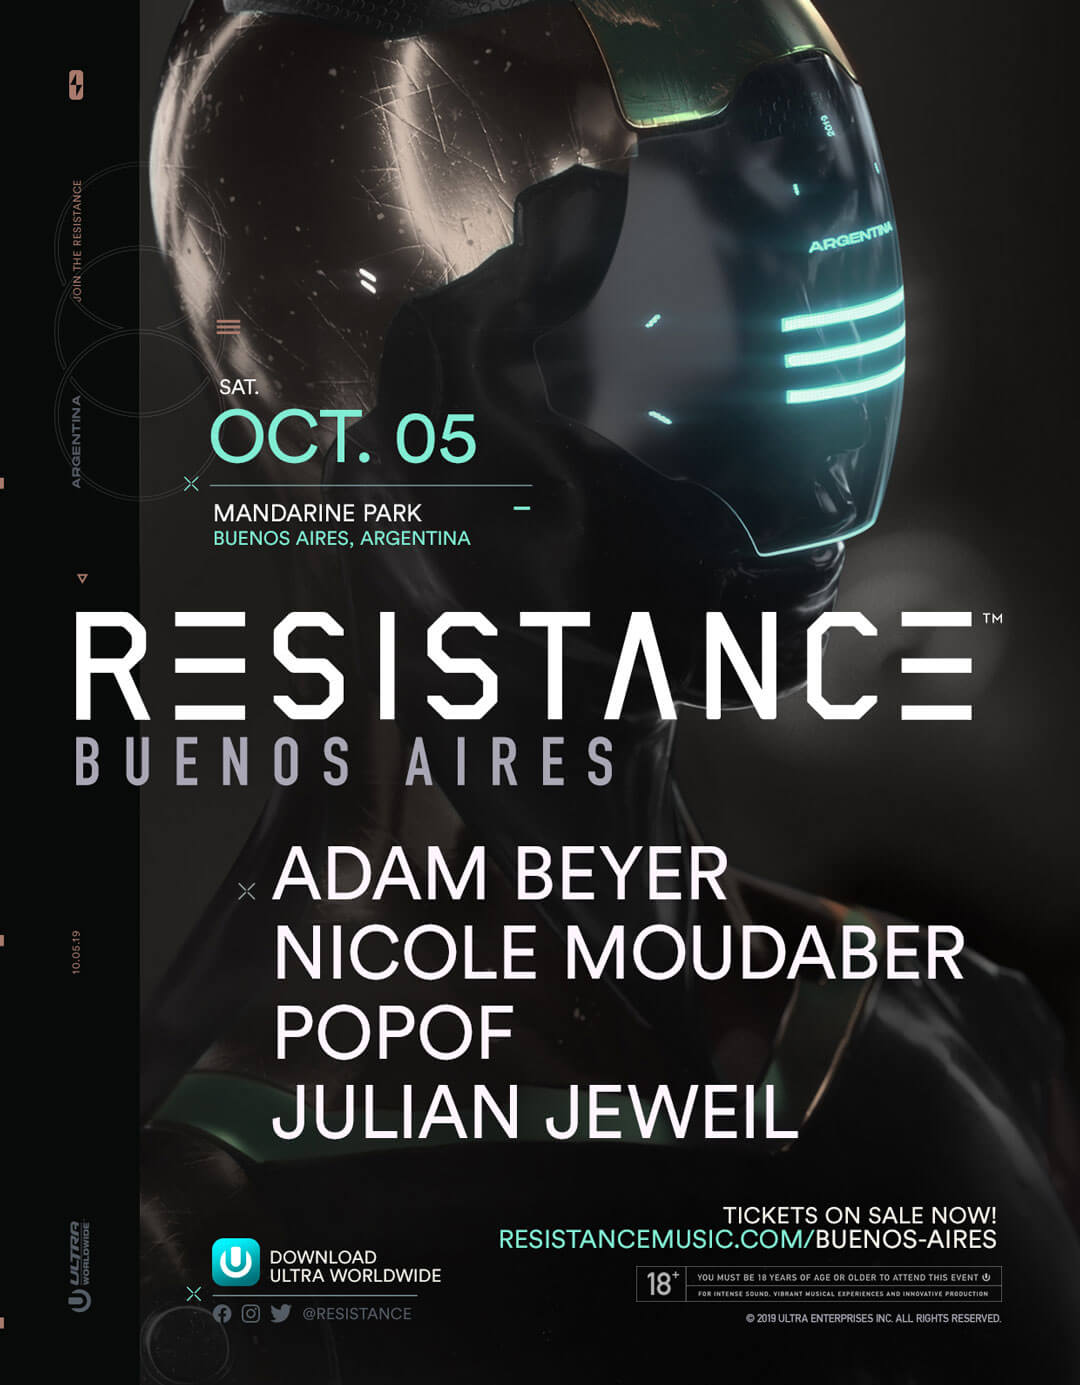 RESISTANCE Buenos Aires Releases Lineup Full of First-Time Performances